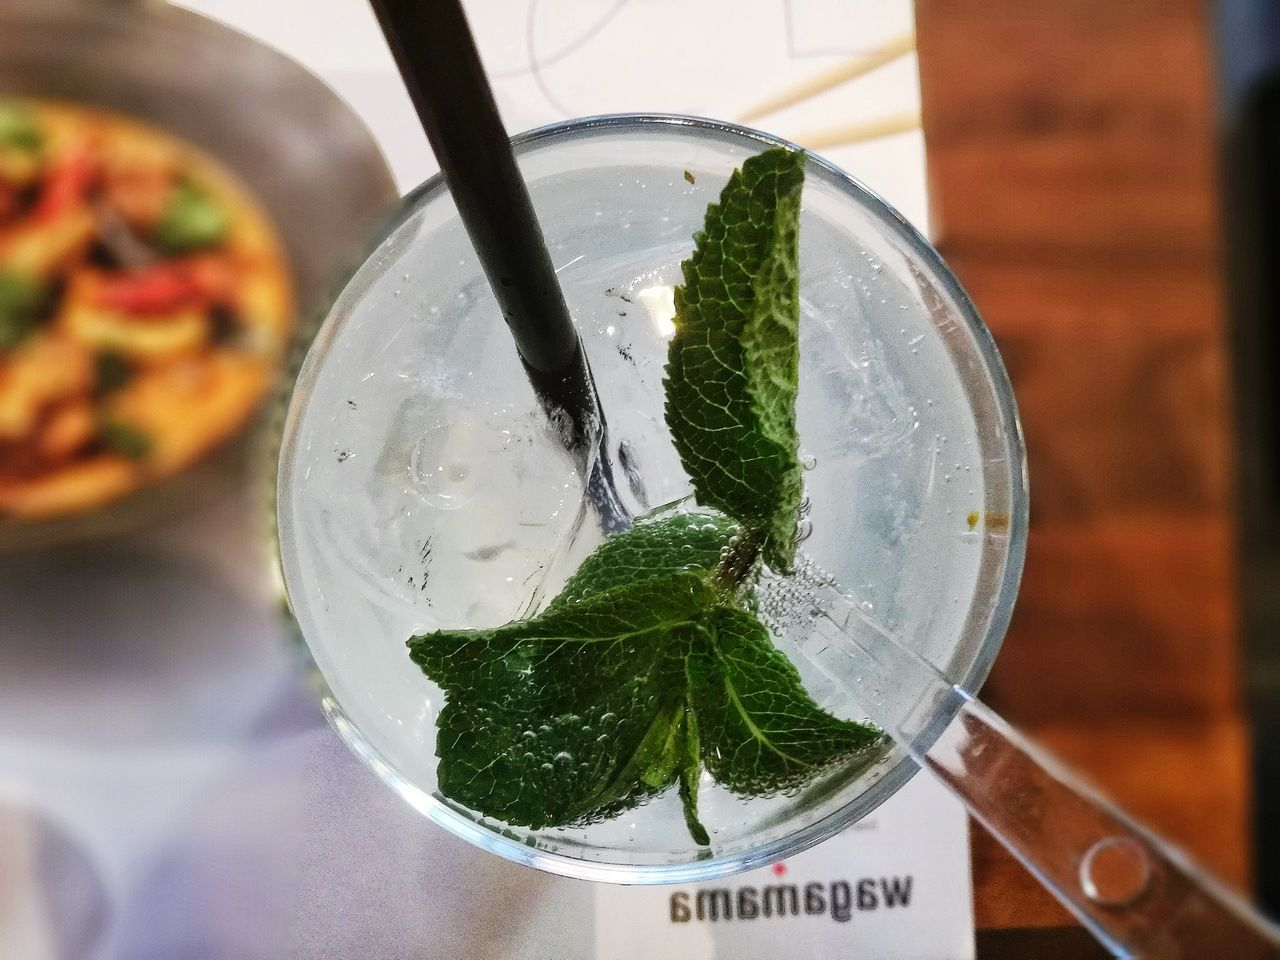 food and drink, freshness, drink, indoors, close-up, no people, refreshment, mint leaf - culinary, healthy eating, leaf, green color, drinking glass, focus on foreground, drinking straw, food, mojito, day